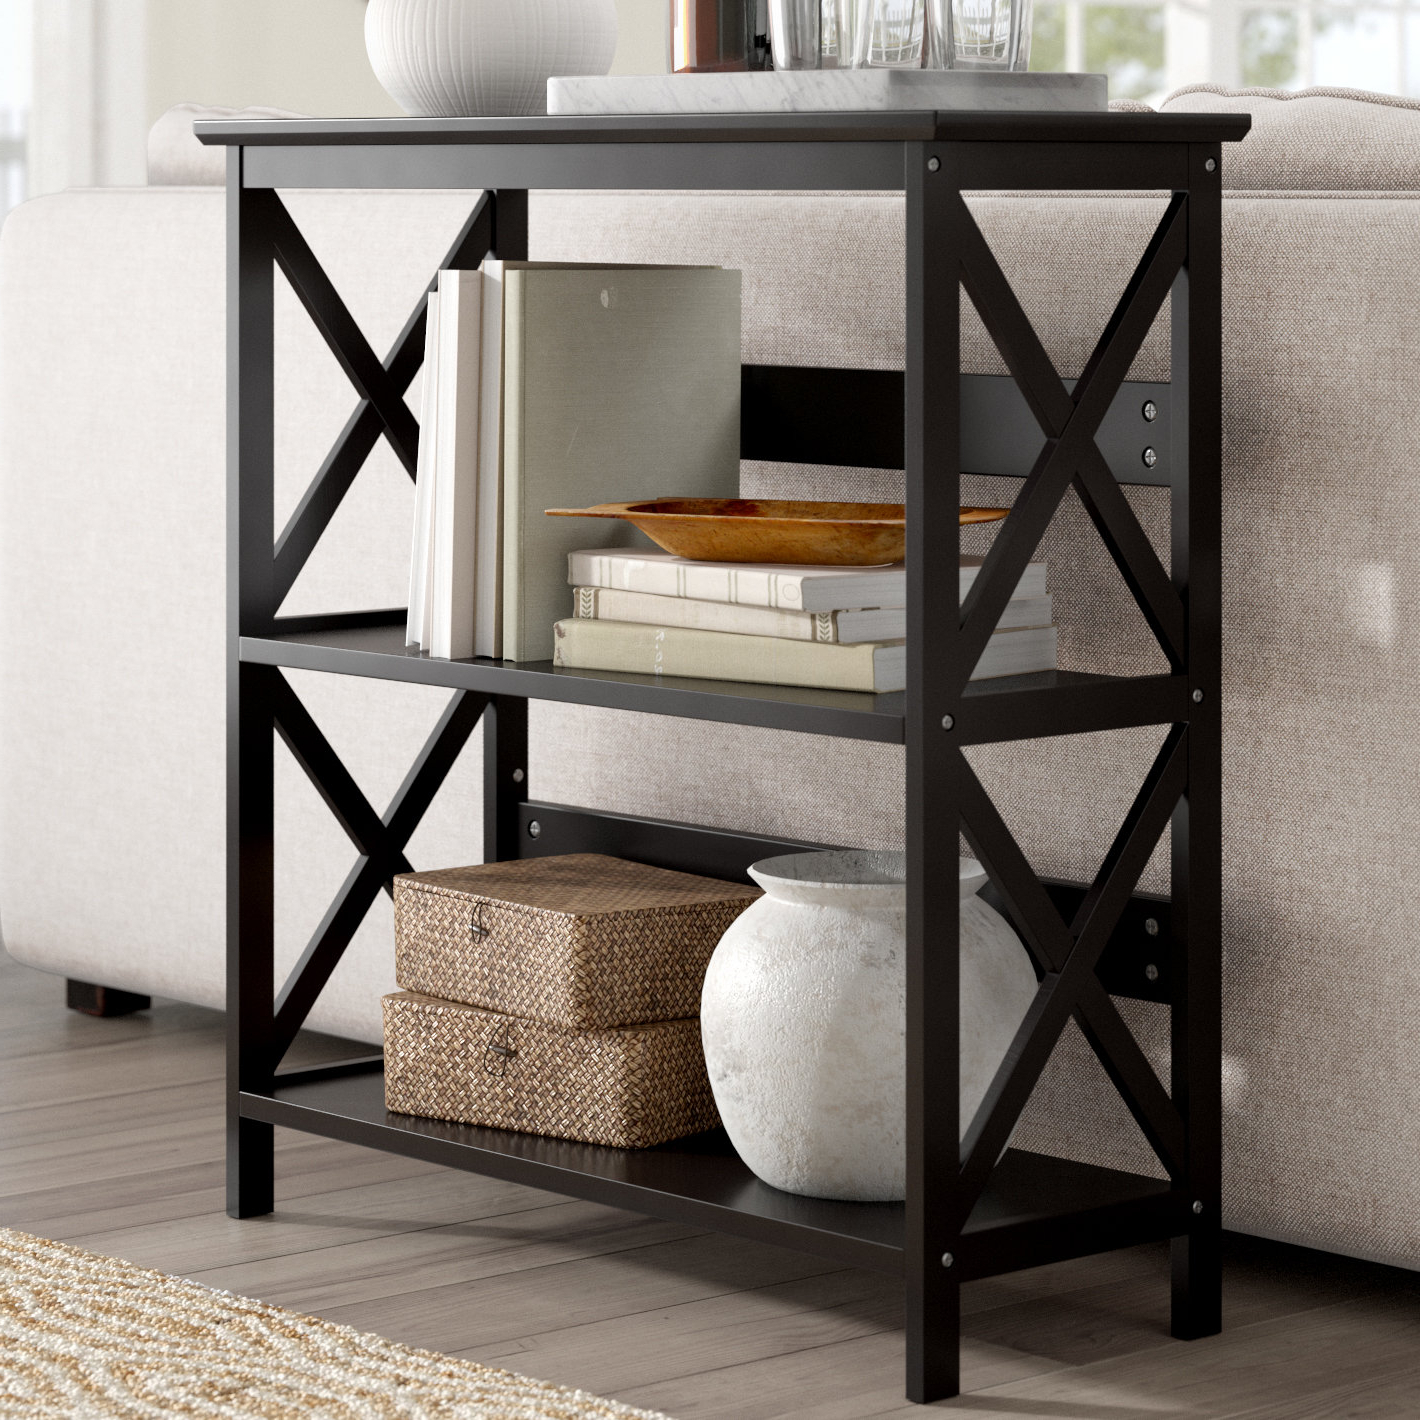 Stoneford Etagere Bookcase Throughout Most Popular Stoneford Etagere Bookcases (View 10 of 20)